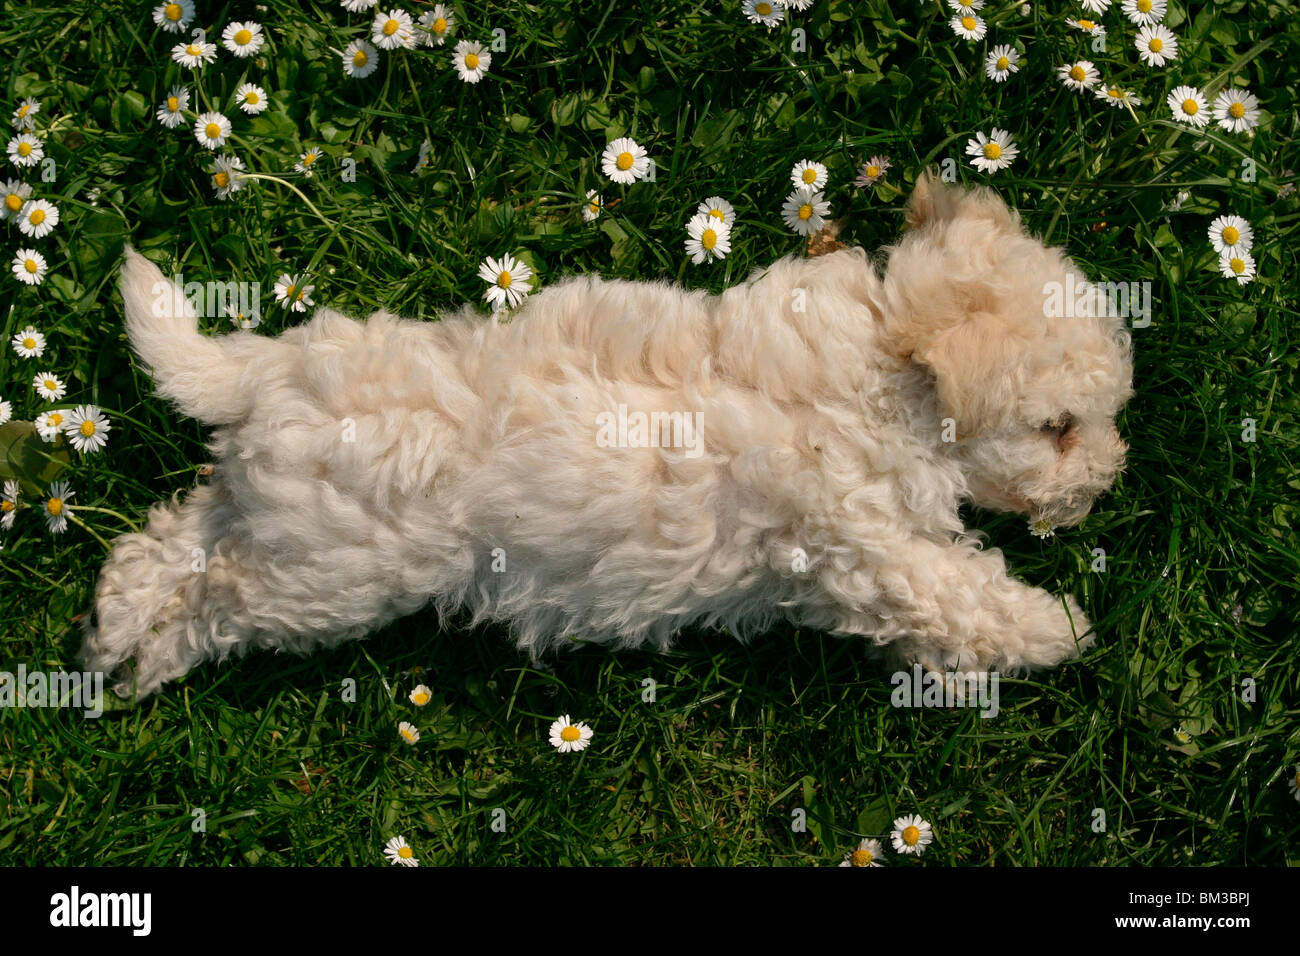 Bolonka Zwetna Welpe Bolonka Zwetna Puppy Stock Photo